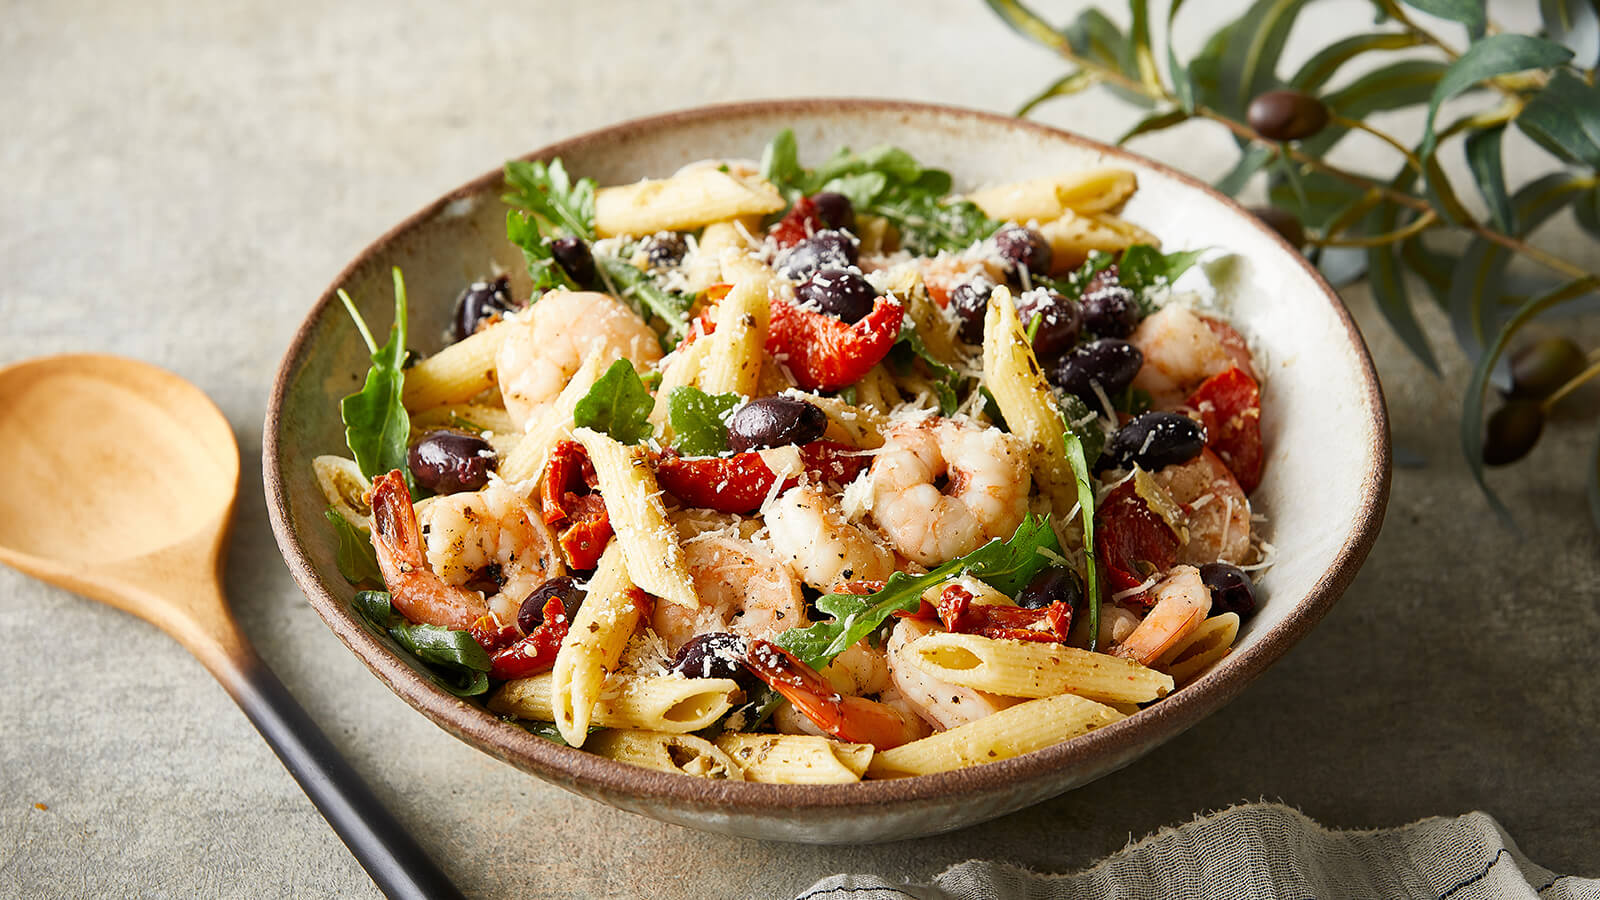 Mediterranean Pasta Salad with Arugula and Shrimp